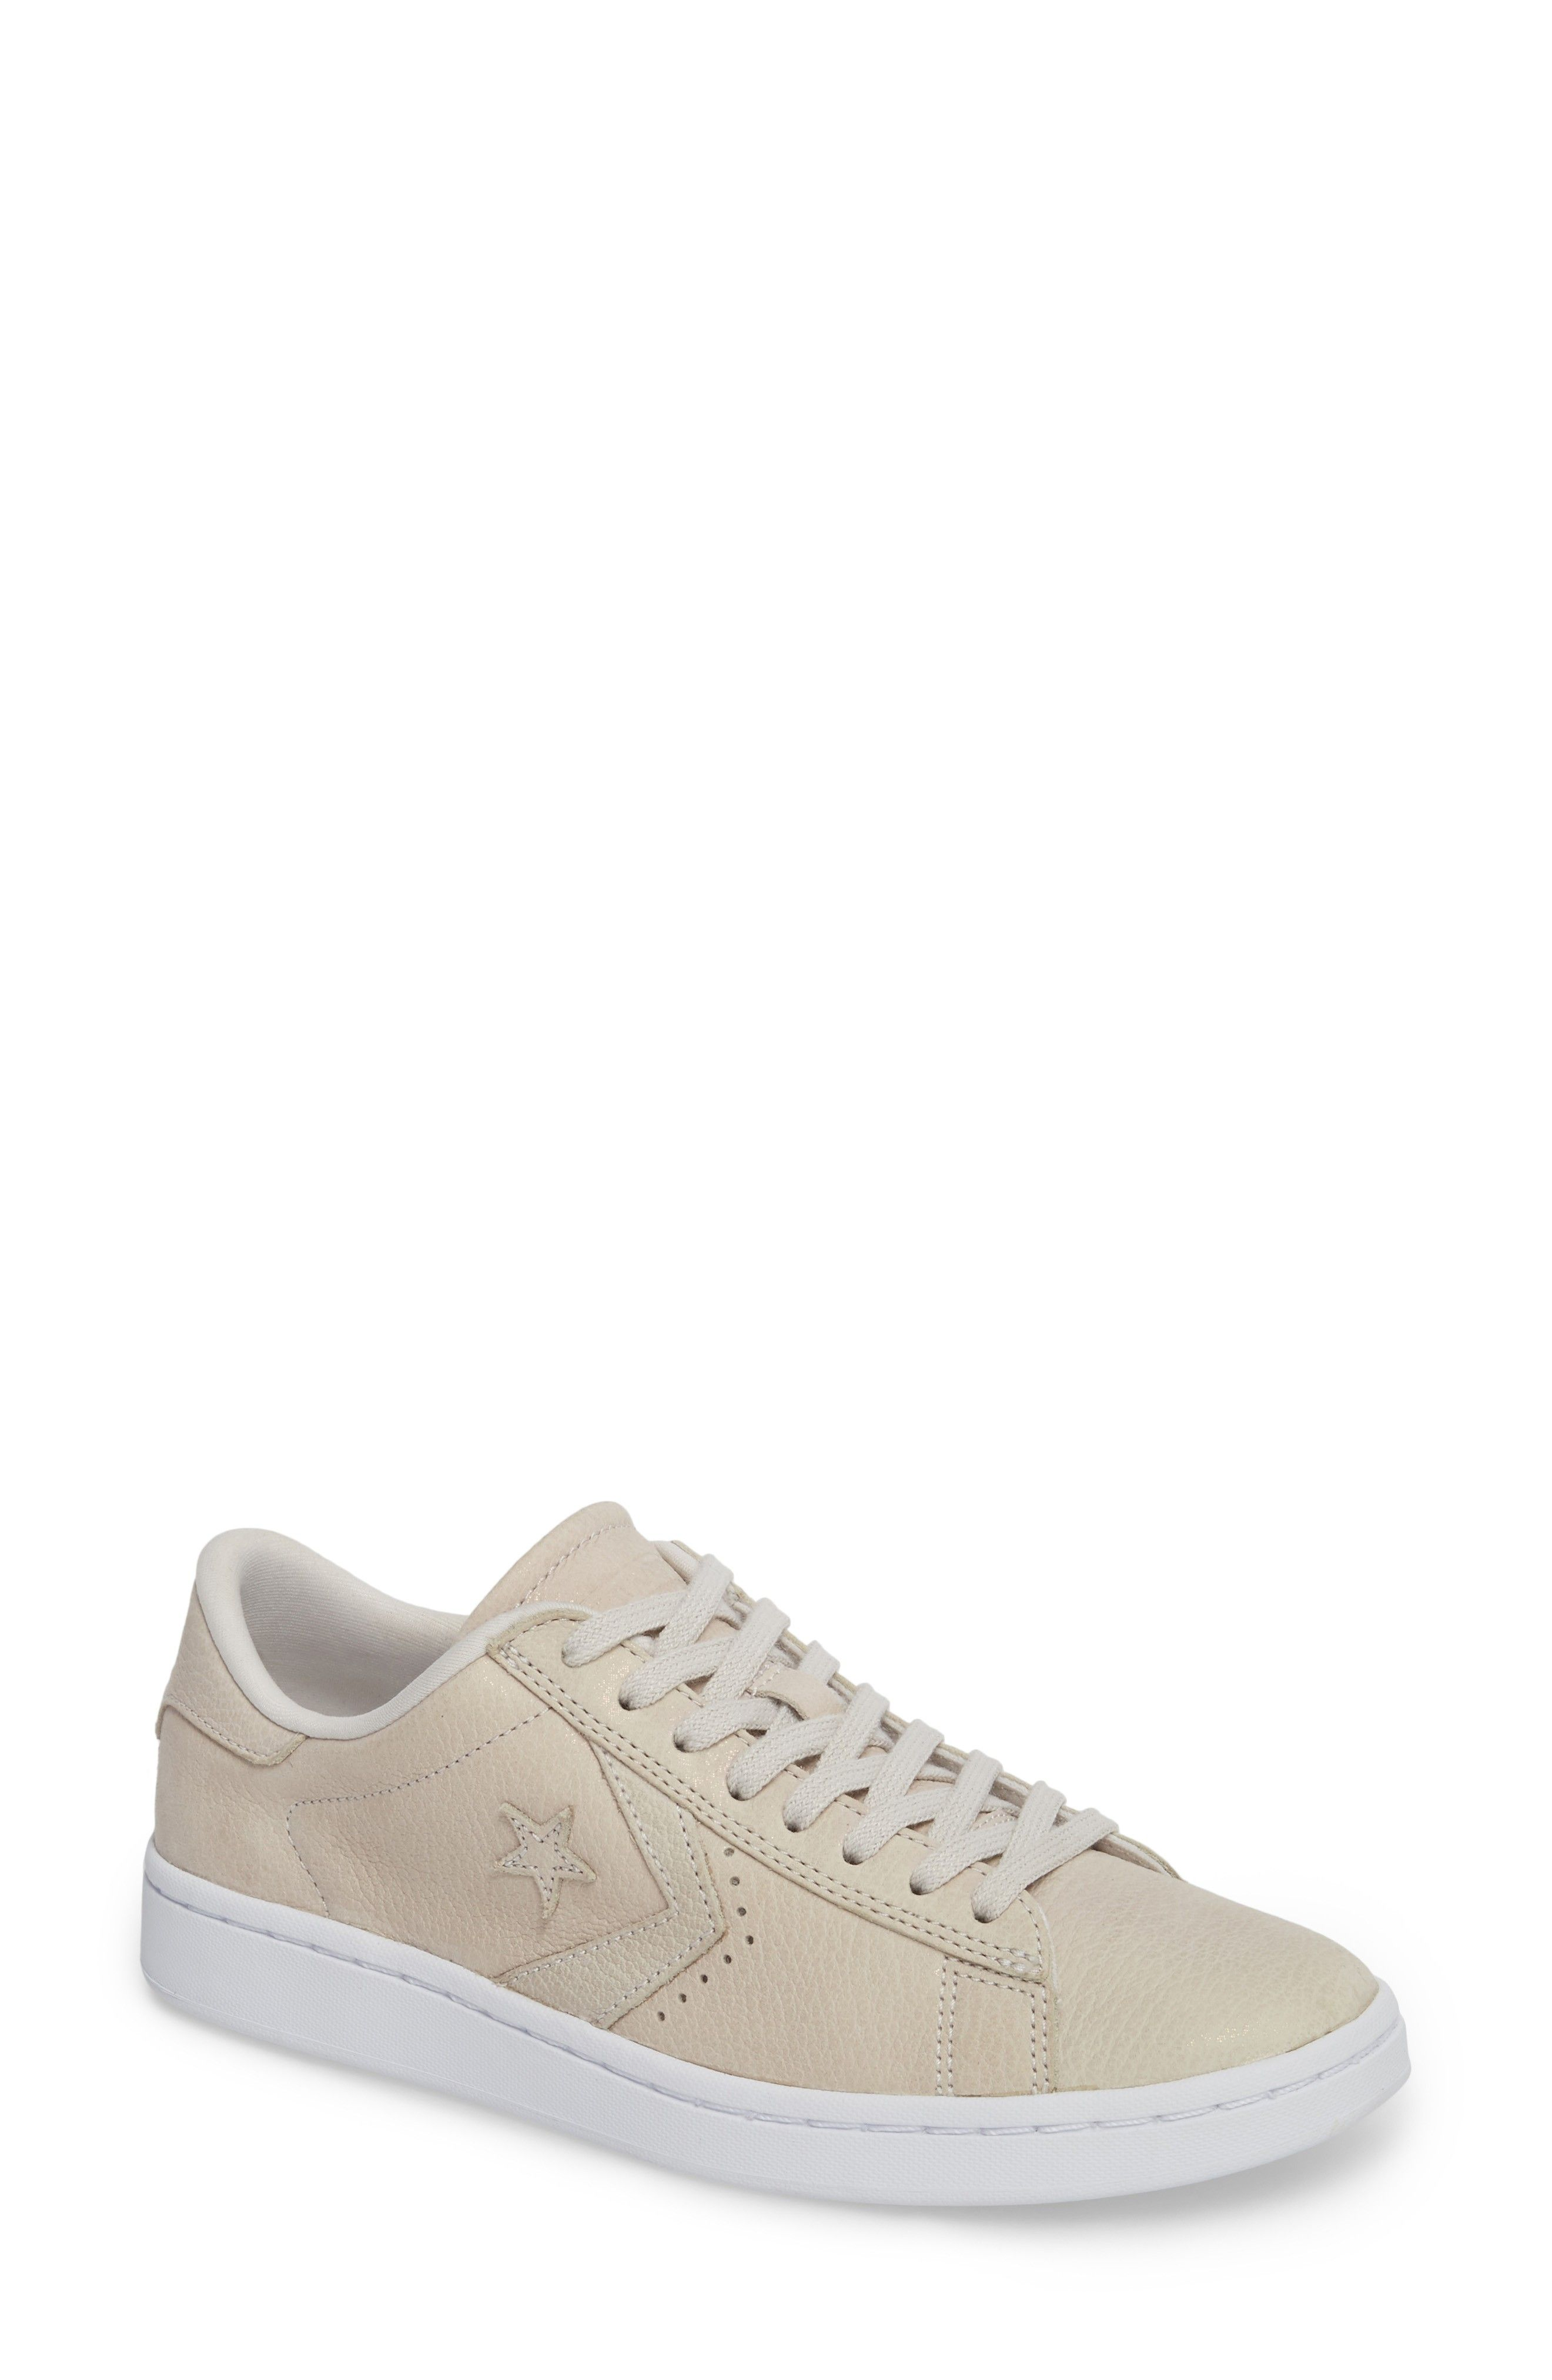 ... discount code for buy converse pro leather lp sneaker online. new  converse shoes. 84 f823a399b